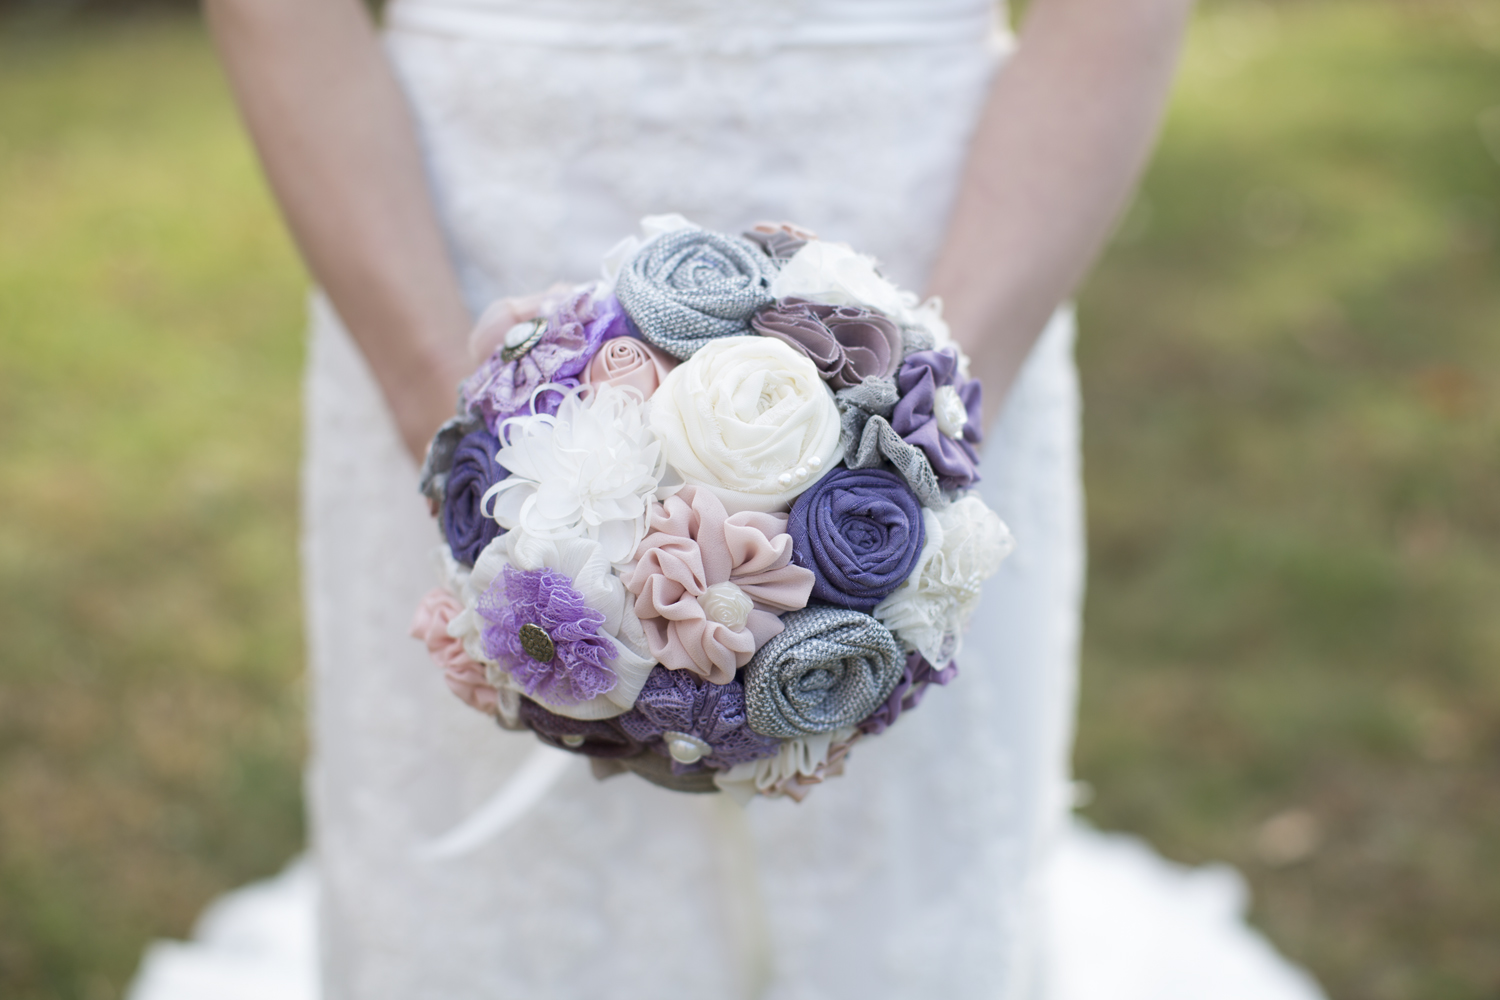 Bride's handmade lavender, pink, gray, and white burlap cloth bouquet